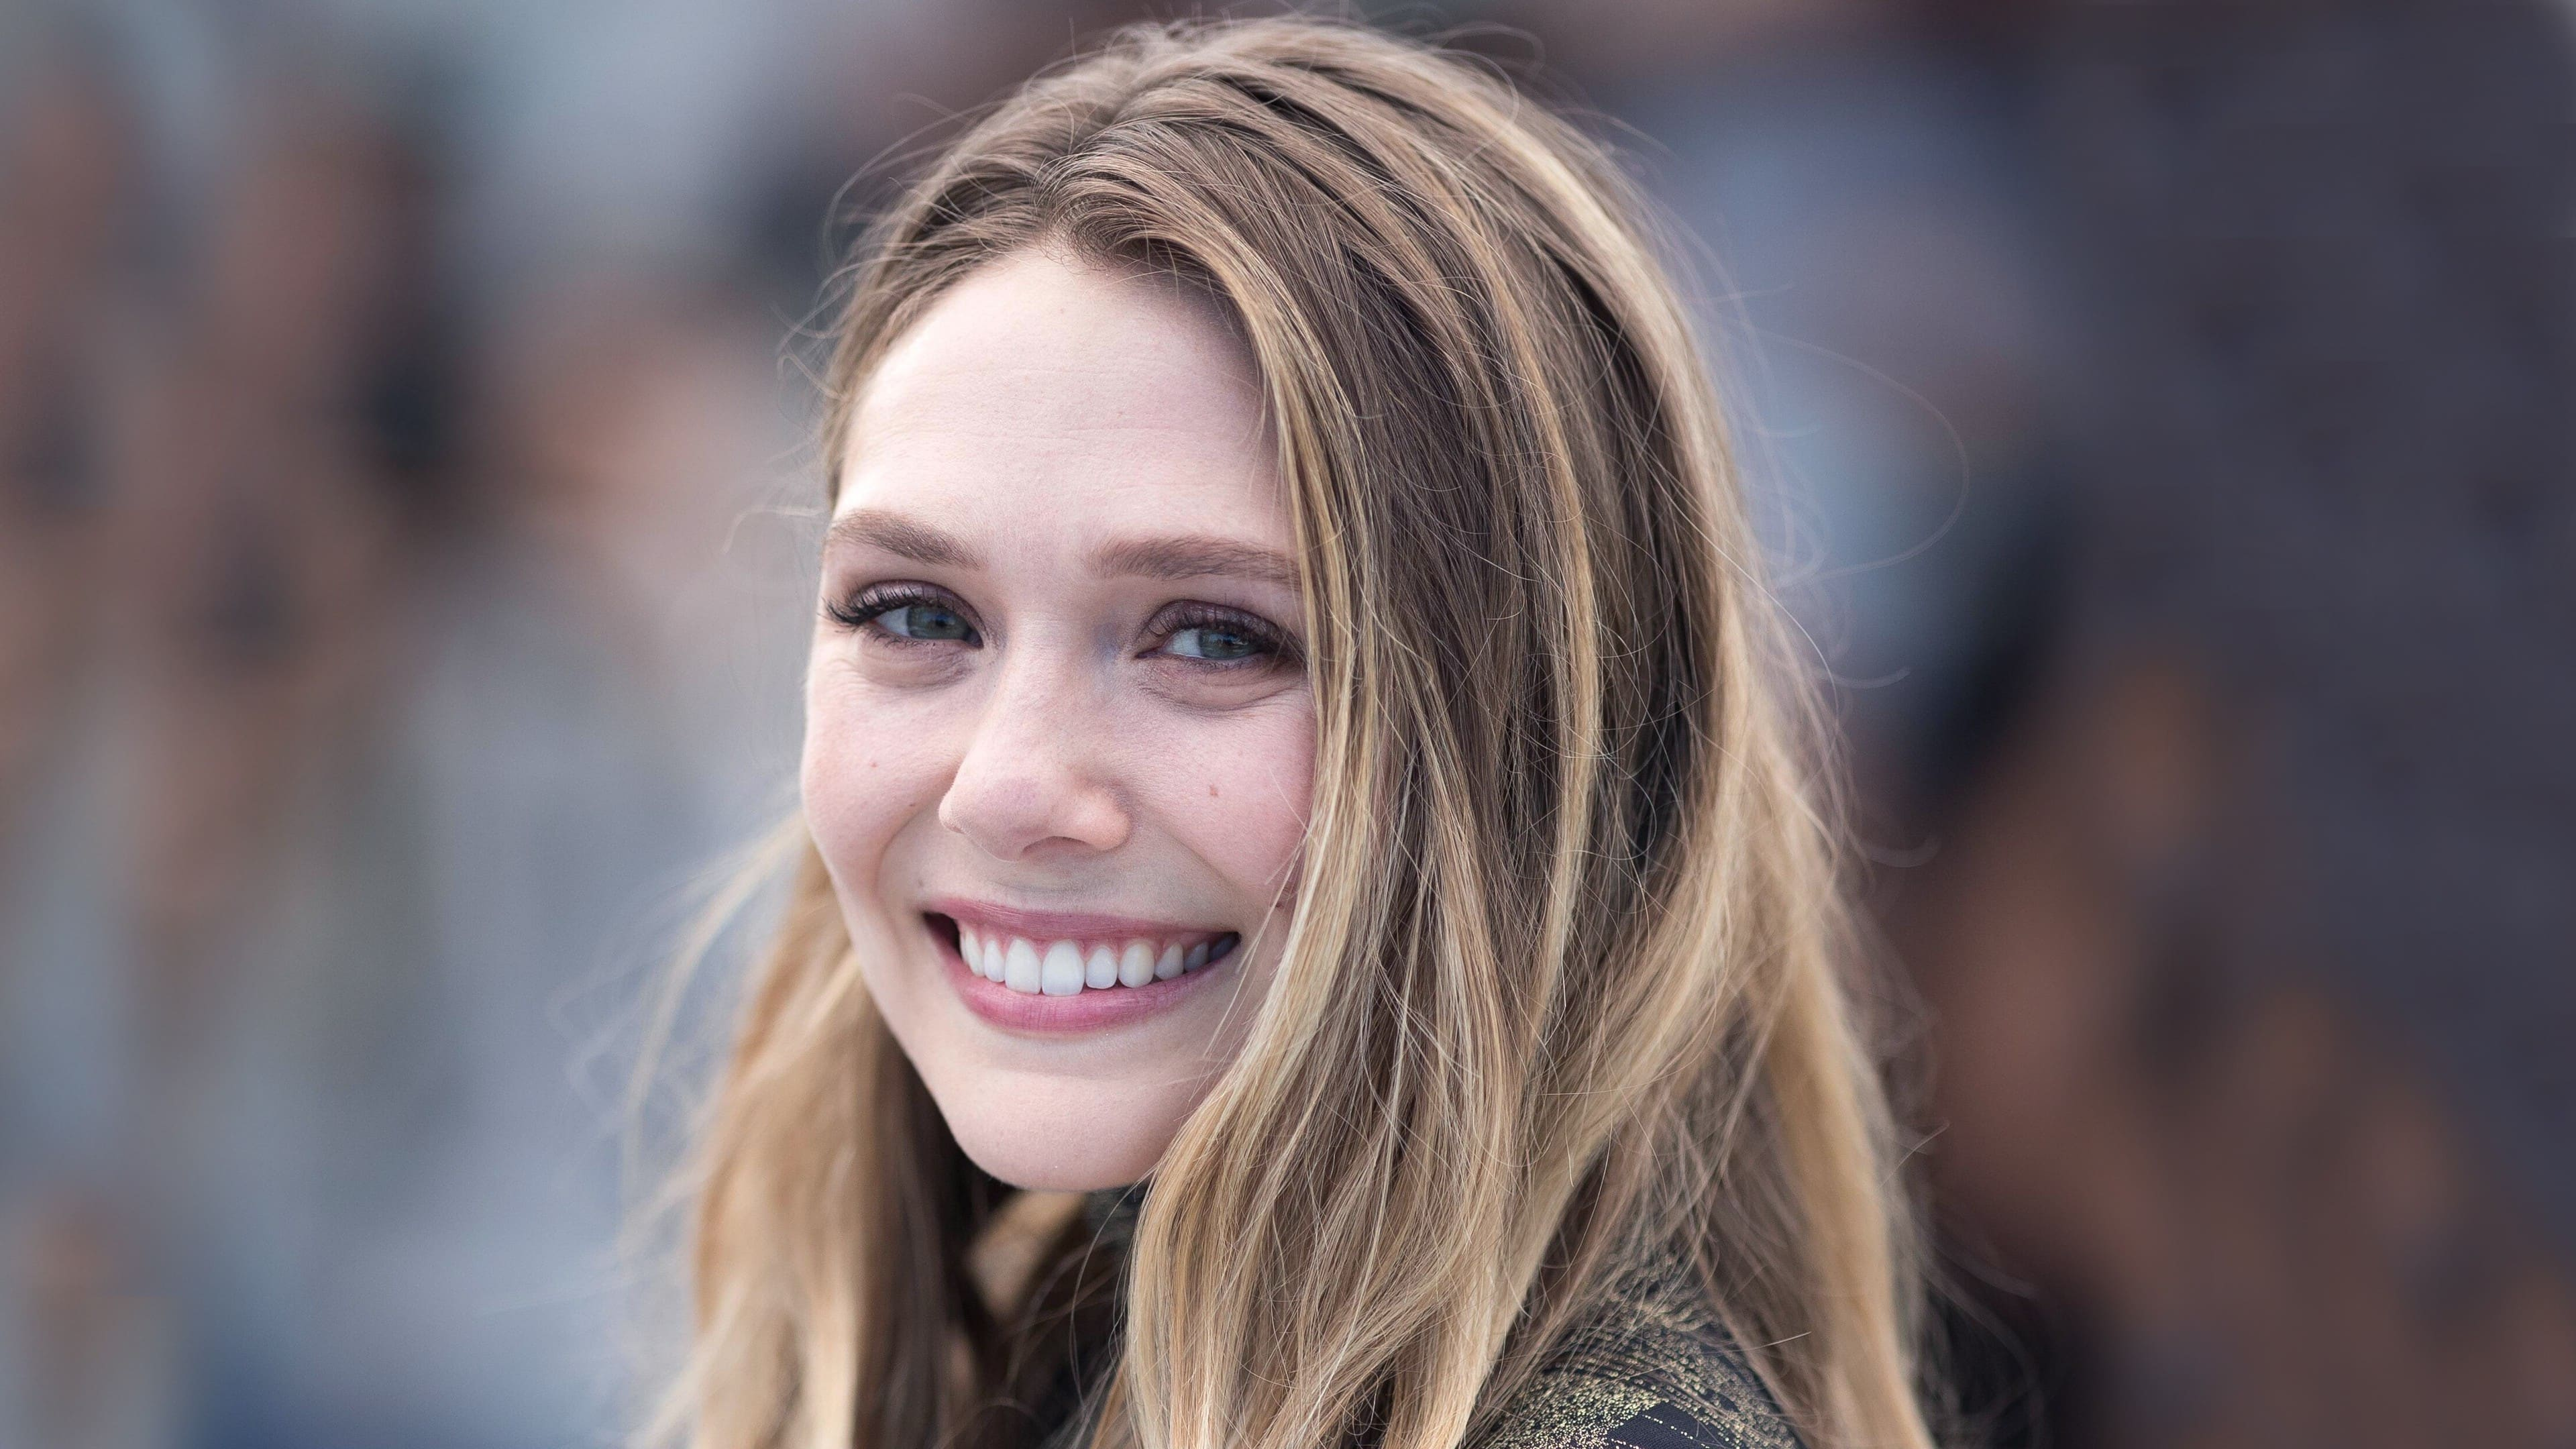 Elizabeth Olsen Smile Face Blonde Wallpapers   New HD 3840x2160